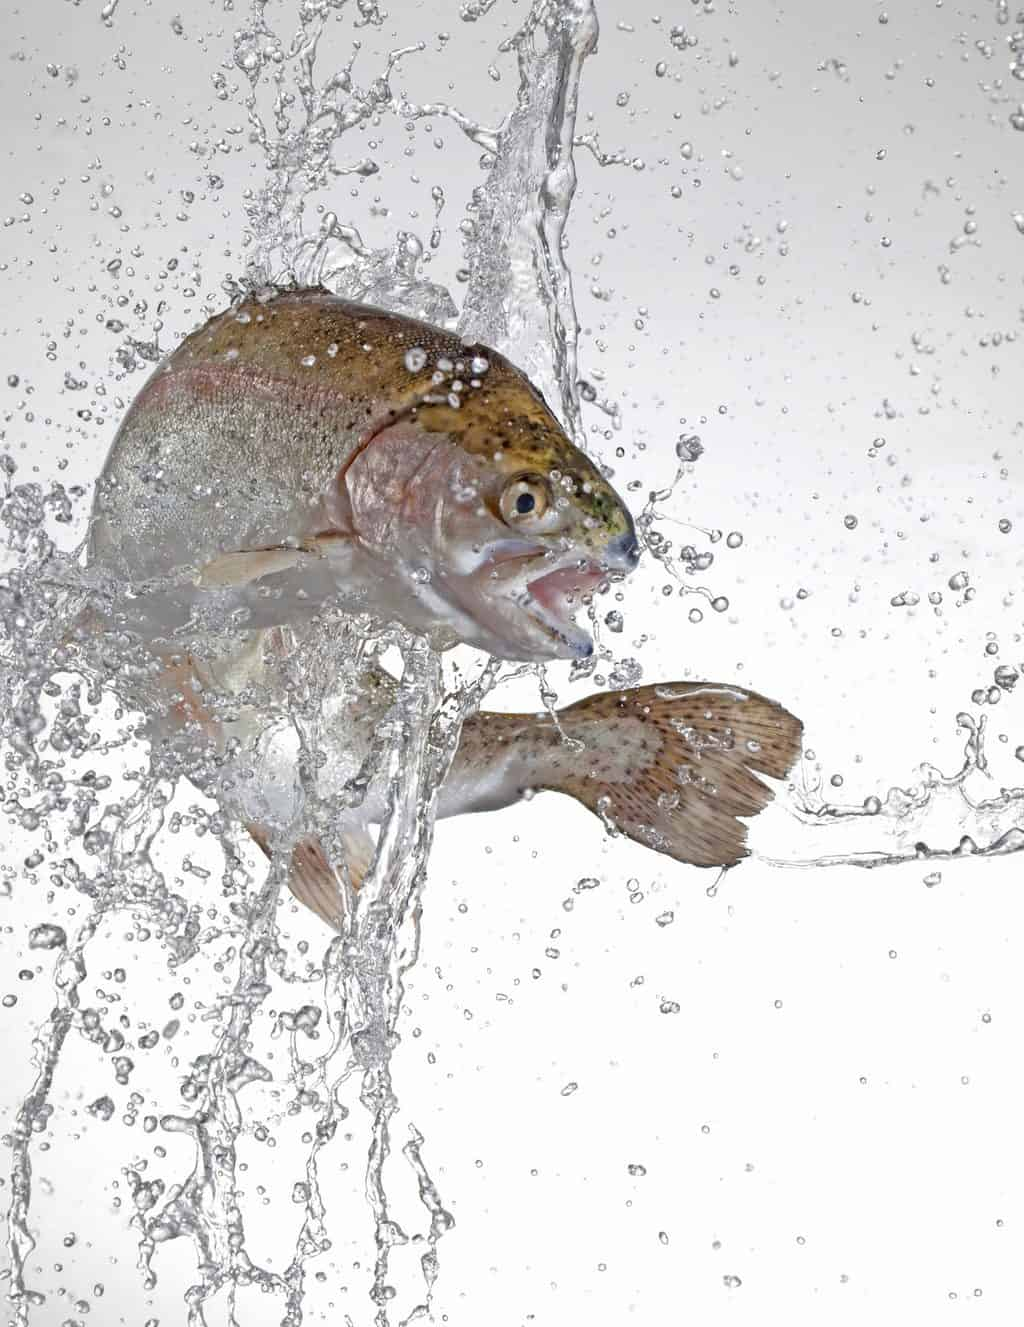 Why do trout jump out of the water? A trout jumping